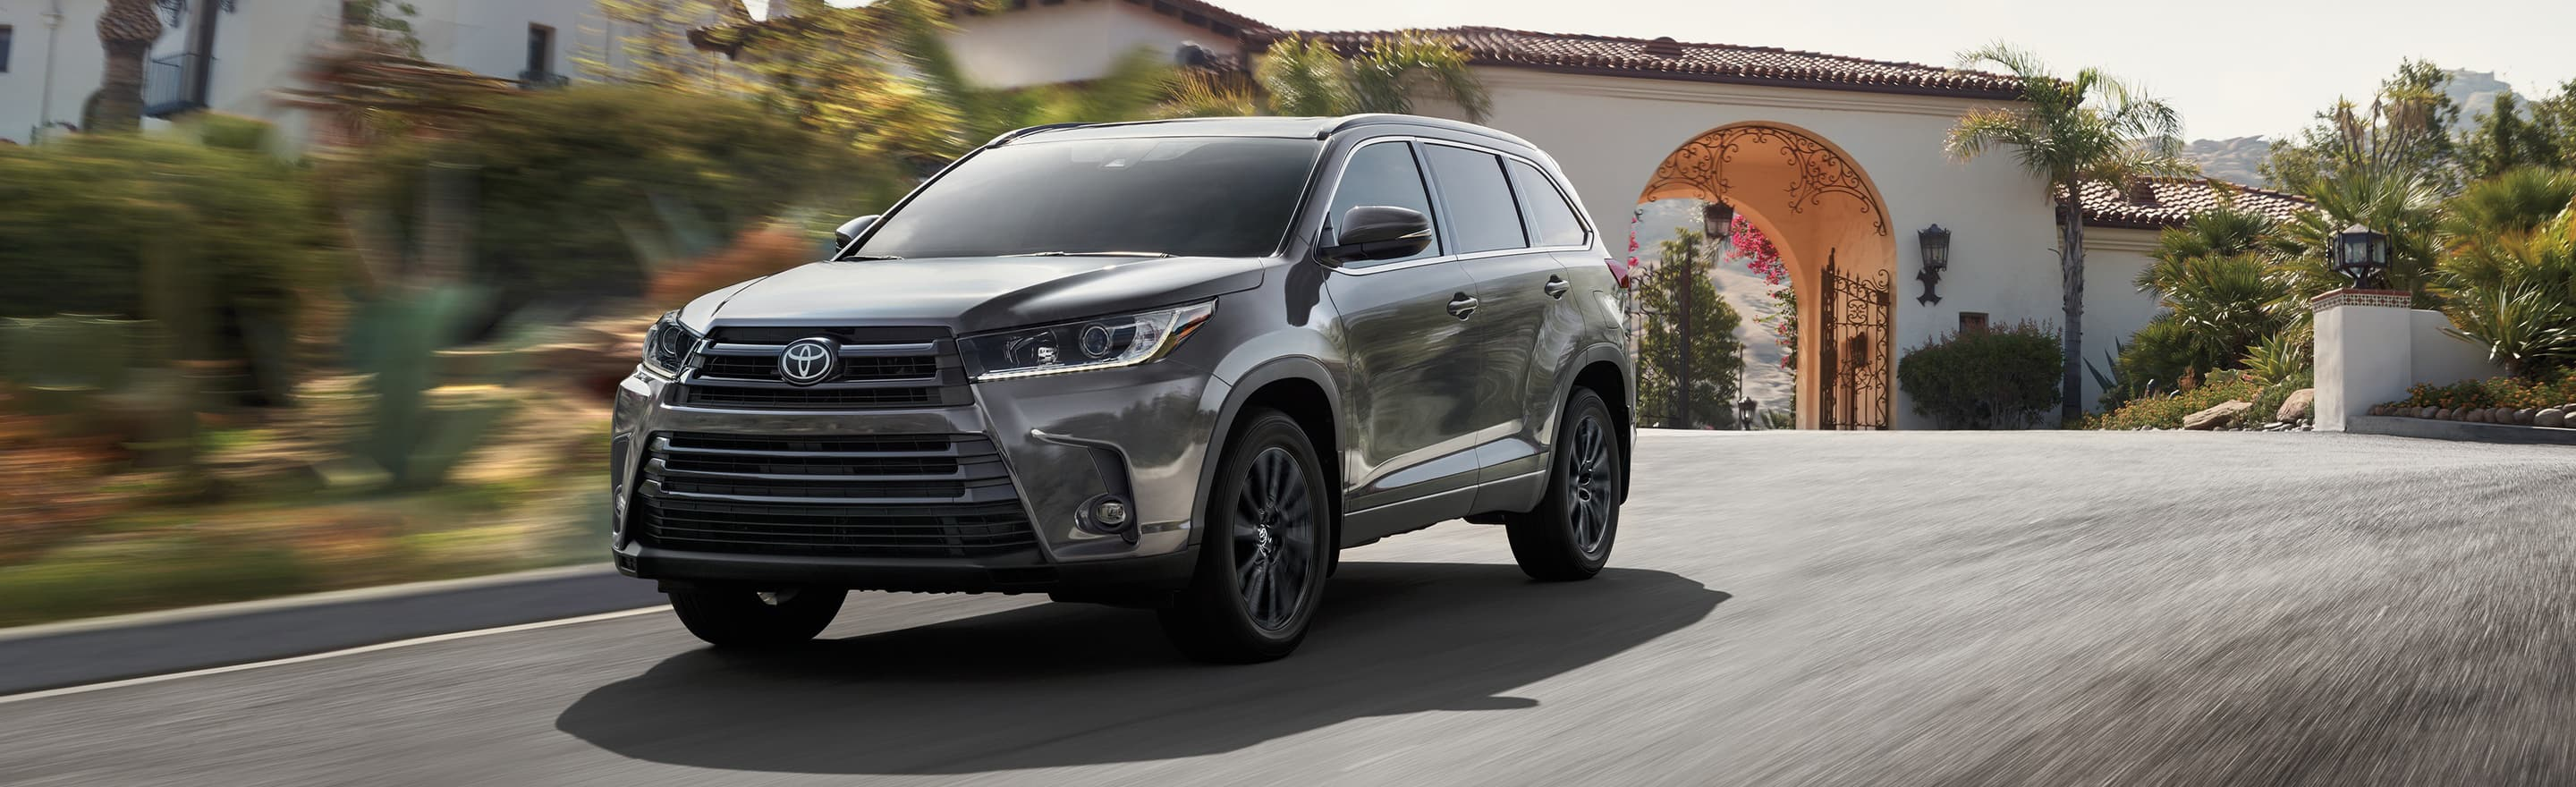 Explore The New 2019 Toyota Highlander Near Cleveland, OH Today